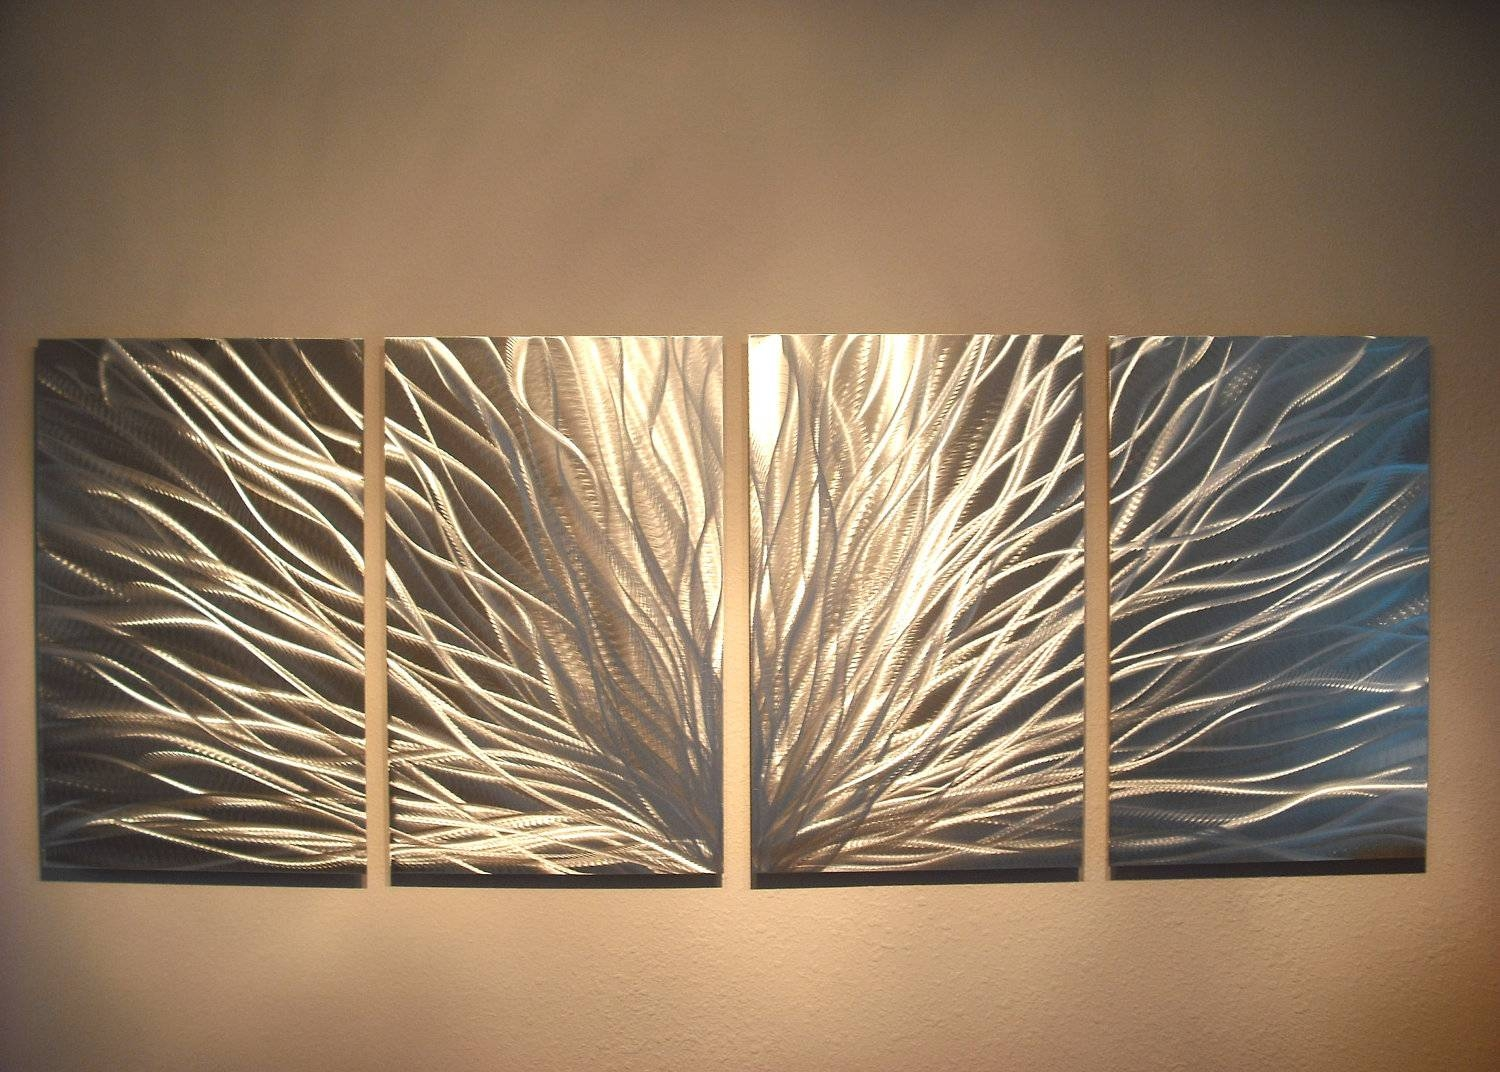 Radiance – Abstract Metal Wall Art Contemporary Modern Decor With Current Contemporary Metal Wall Art Sculptures (View 16 of 20)